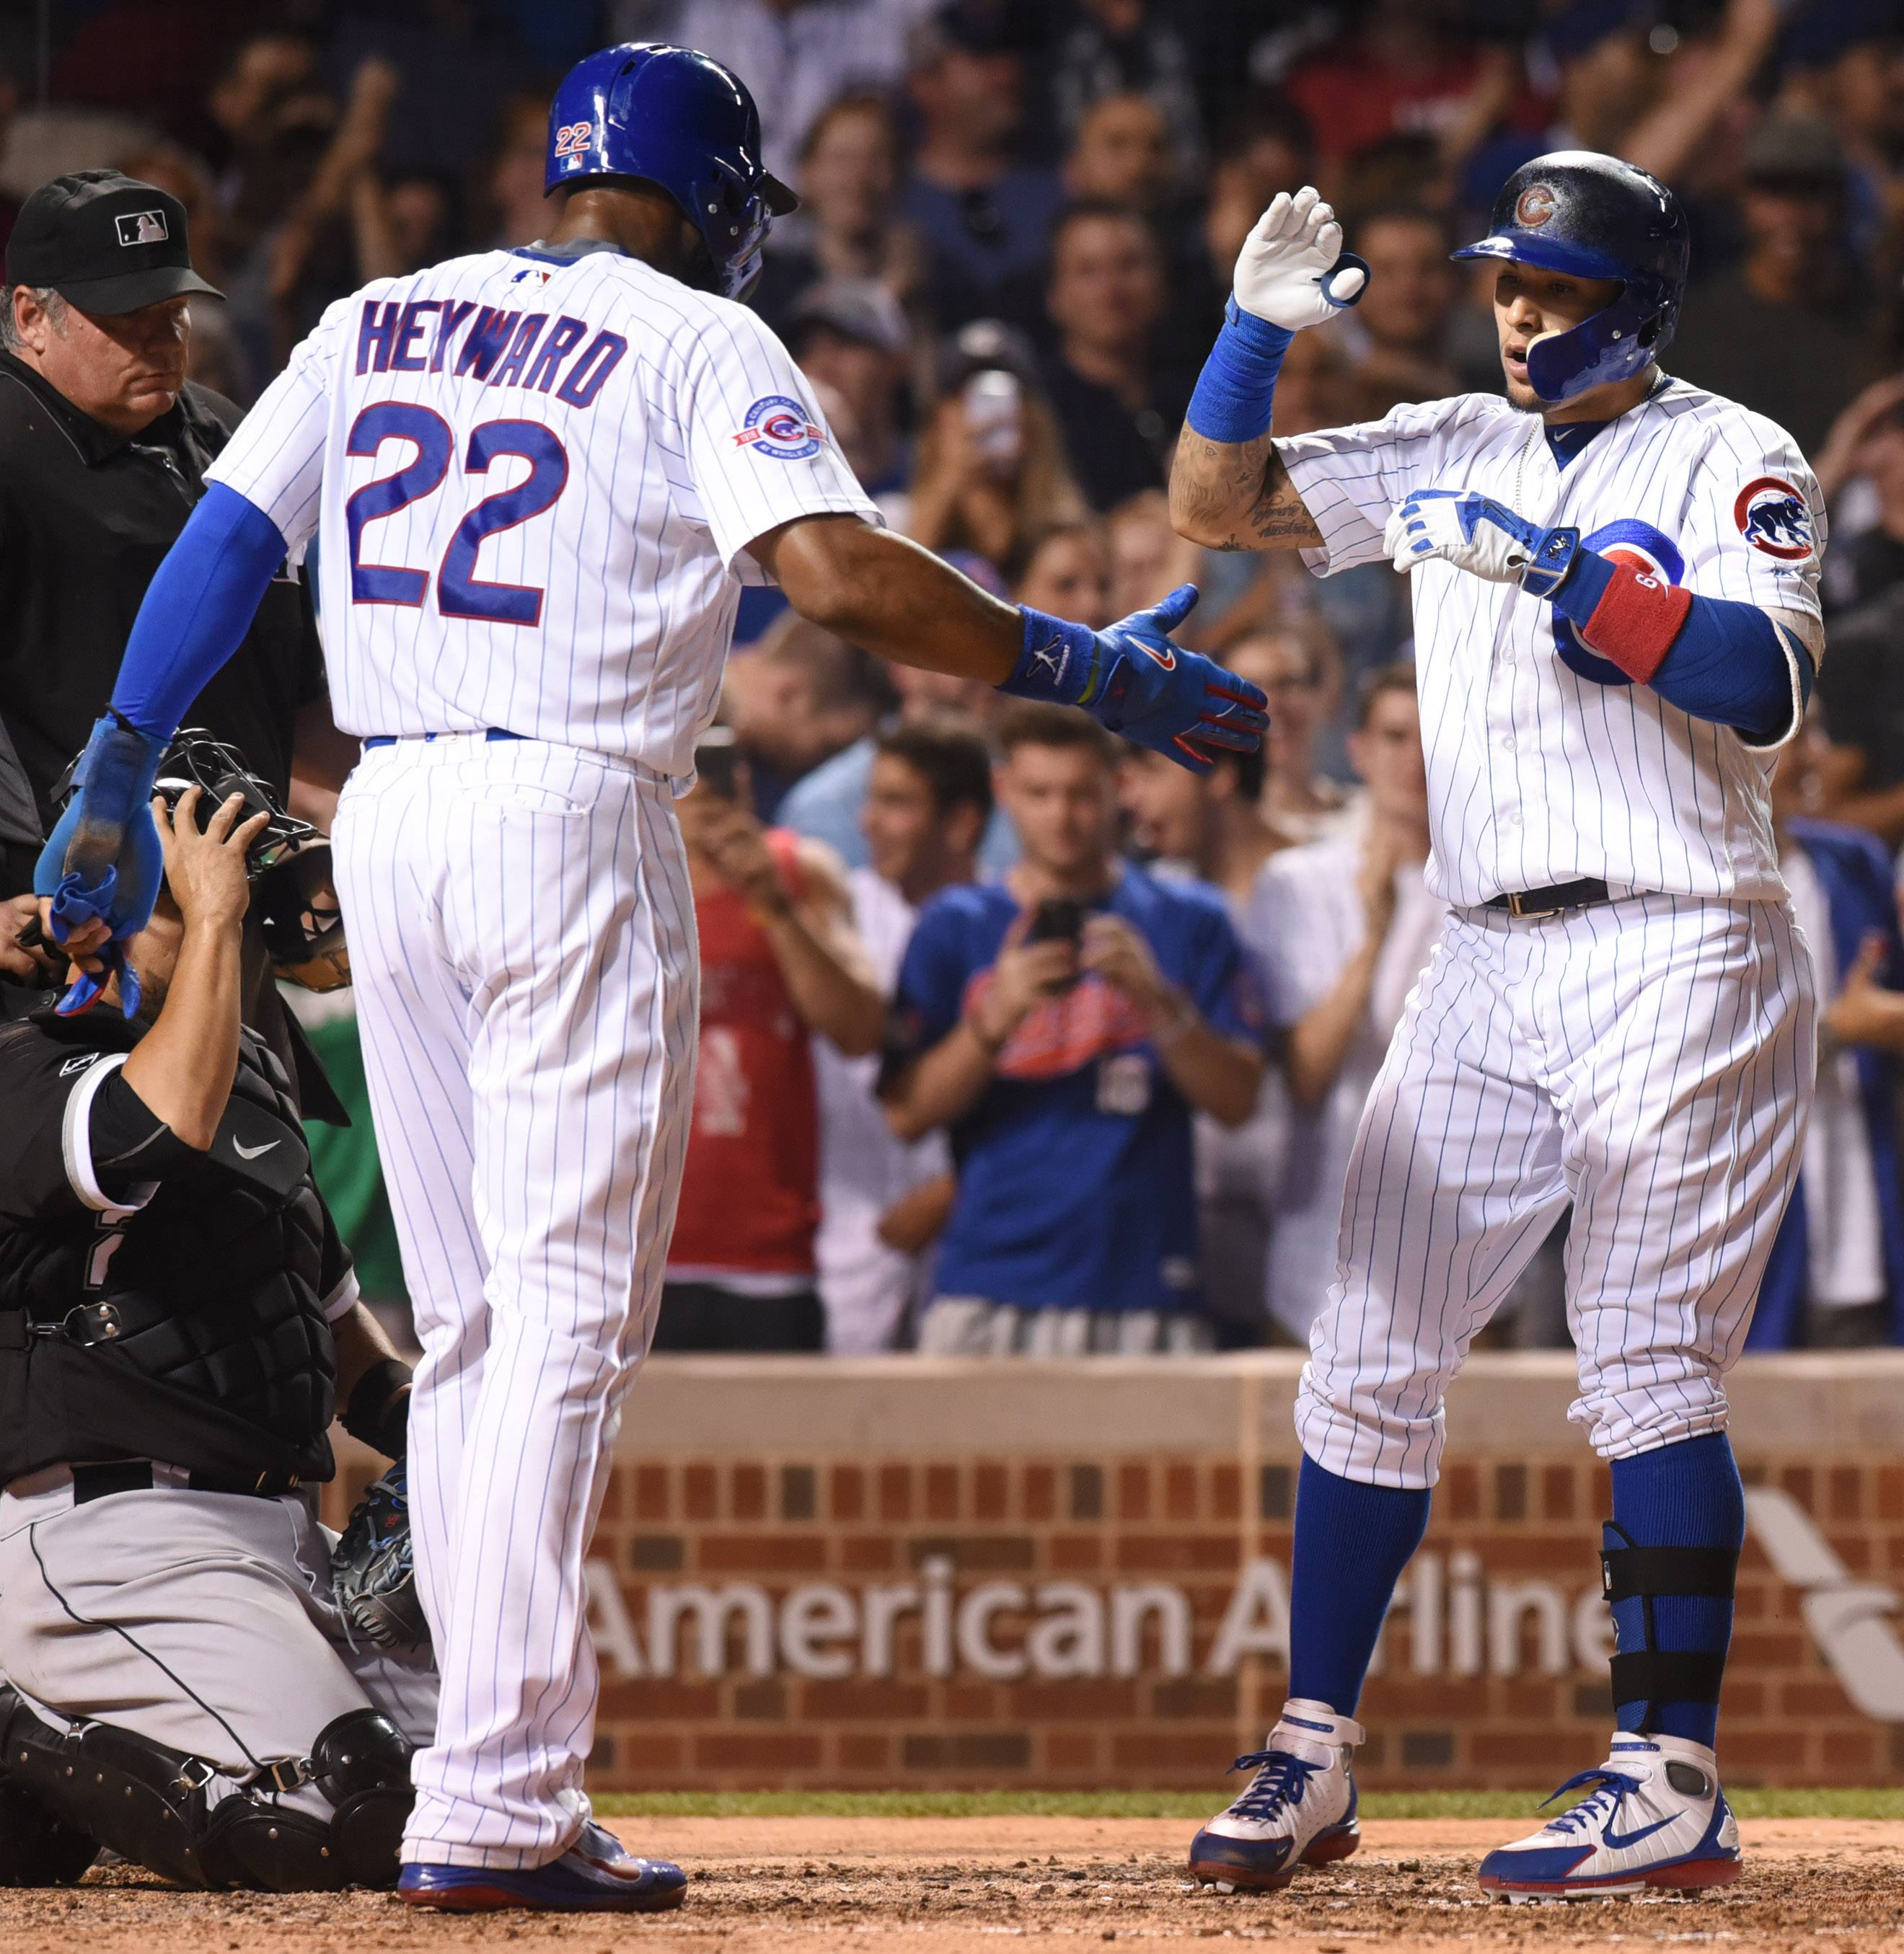 Joe Lewnard/jlewnard@dailyherald.comJavier Baez of the Cubs celebrates with teammate Jason Heyward as he crosses the plate after hitting a two-run home run to break a 1-1 tie during the bottom of the seventh inning of Wednesday's game against the White Sox at Wrigley Field in Chicago.